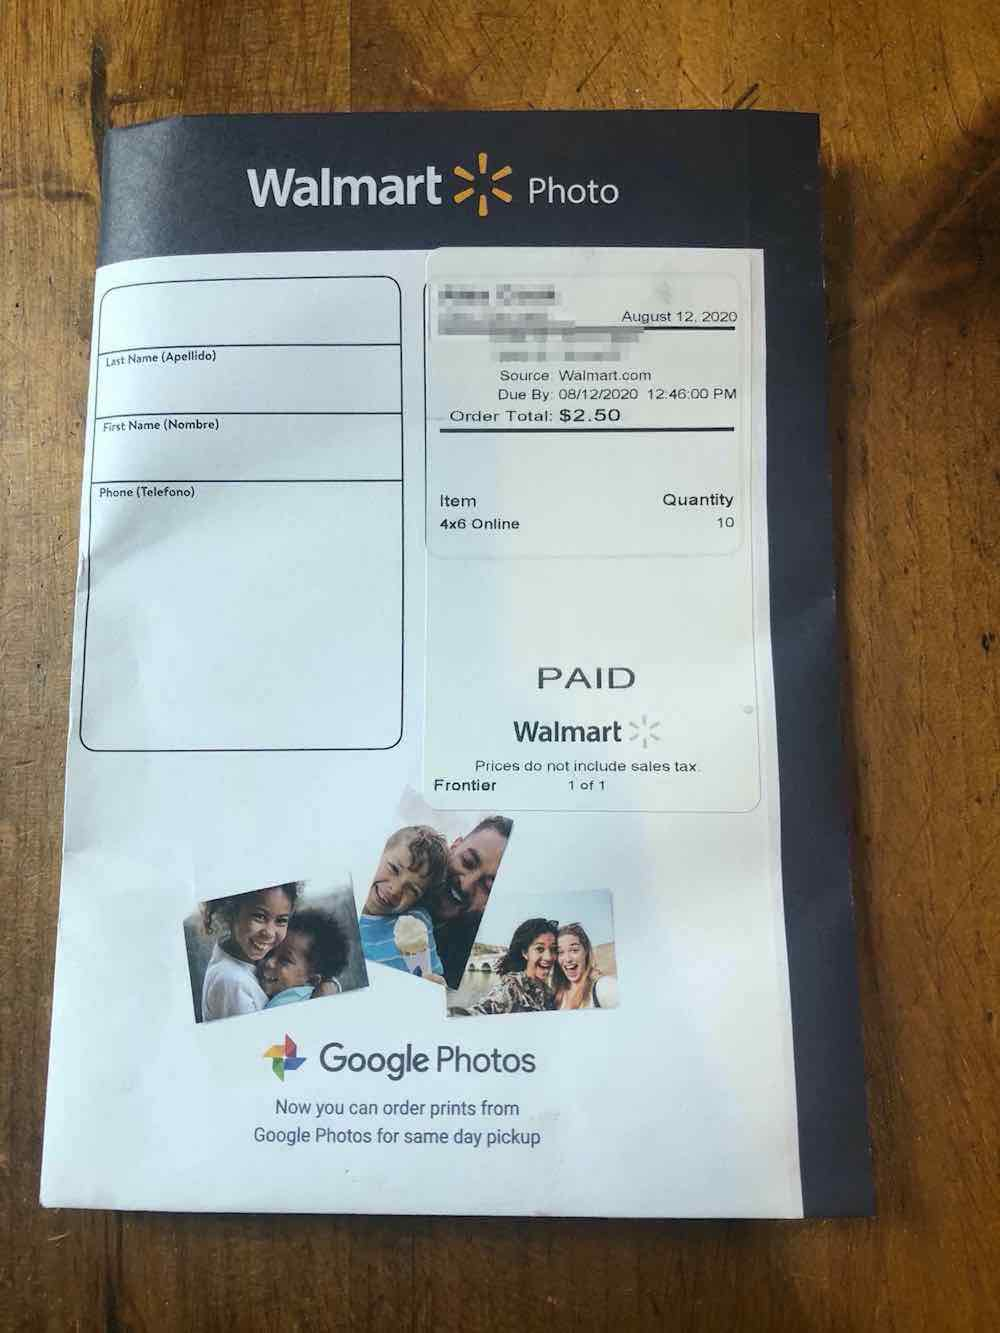 "A navy blue wallet envelope with most of the front in white. The top part has white text that says ""Walmart Photo"" with the Walmart's logo in yellow in between these two words and the ""Walmart"" in bold text. Below is the beginning of the white part. On the left side is a box with rounded-off edges. It contains three lines. Under the first line is a text with the Spanish translation in brackets that reads, ""Last Name (Apellido)."" Under the second line is a text that reads, ""First Name (Nombre)."" Under the third line, it says ""Phone (Telefono)"" and there is a long black space under the third line that increases the length of the box. The text in the box is printed in black. On the right side, there seems to be a placeholder under; two white stickers are on it. The first sticker is the shipping label and the top left corner is blurred. Across there is a date that says ""August 12, 2020."" Then a thick black line. Under it, some blurred text, under the blur is a text that says, ""Source: Walmart.com, Due By 08/12/2020 12:46:00 PM, Order Total: $2.50."" Another thick line, beneath the line, is text in a table format. The text on the left says ""Item"" opposite it reads ""Quantity."" Under ""item"" it says ""4x6 Online"" and the corresponding text below the ""quantity"" is ""10."" The second sticker is right below the first one, with ""PAID"" in large fonts at the center. Below is the text ""Walmart"" and the Walmart logo in faint black and white print. There is a text below that reads, ""Prices do not include sales tax."" At the bottom left of this sticker is the word ""Frontier"" and across it is the text ""1 of 1."" All the text on the stickers were printed in black. At the bottom of the white part of the envelope are three photos printed like they were spread on one another. The first picture on the left has a girl of about 7 or 9 years old, hugging a boy who seems to be 5 or 6 years old, presumably siblings and both smiling at the camera. The photo in the middle has a man and a young boy smiling, the boy seems to be sitting on the man's lap, it is not certain as the photo is a close-up shot; The boy is holding a cone of ice cream. The last photo on the right has two ladies smiling at the camera, presumed to be friends and on a vacation. Below this photo is Google Photos logo of orange, red, green, and blue, and right in front says ""Google Photos,"" The former is in much bolder font. There is message under the reads, ""Now you can order prints from Google Photos for same day pickup."" Envelope sitting on wood table top."